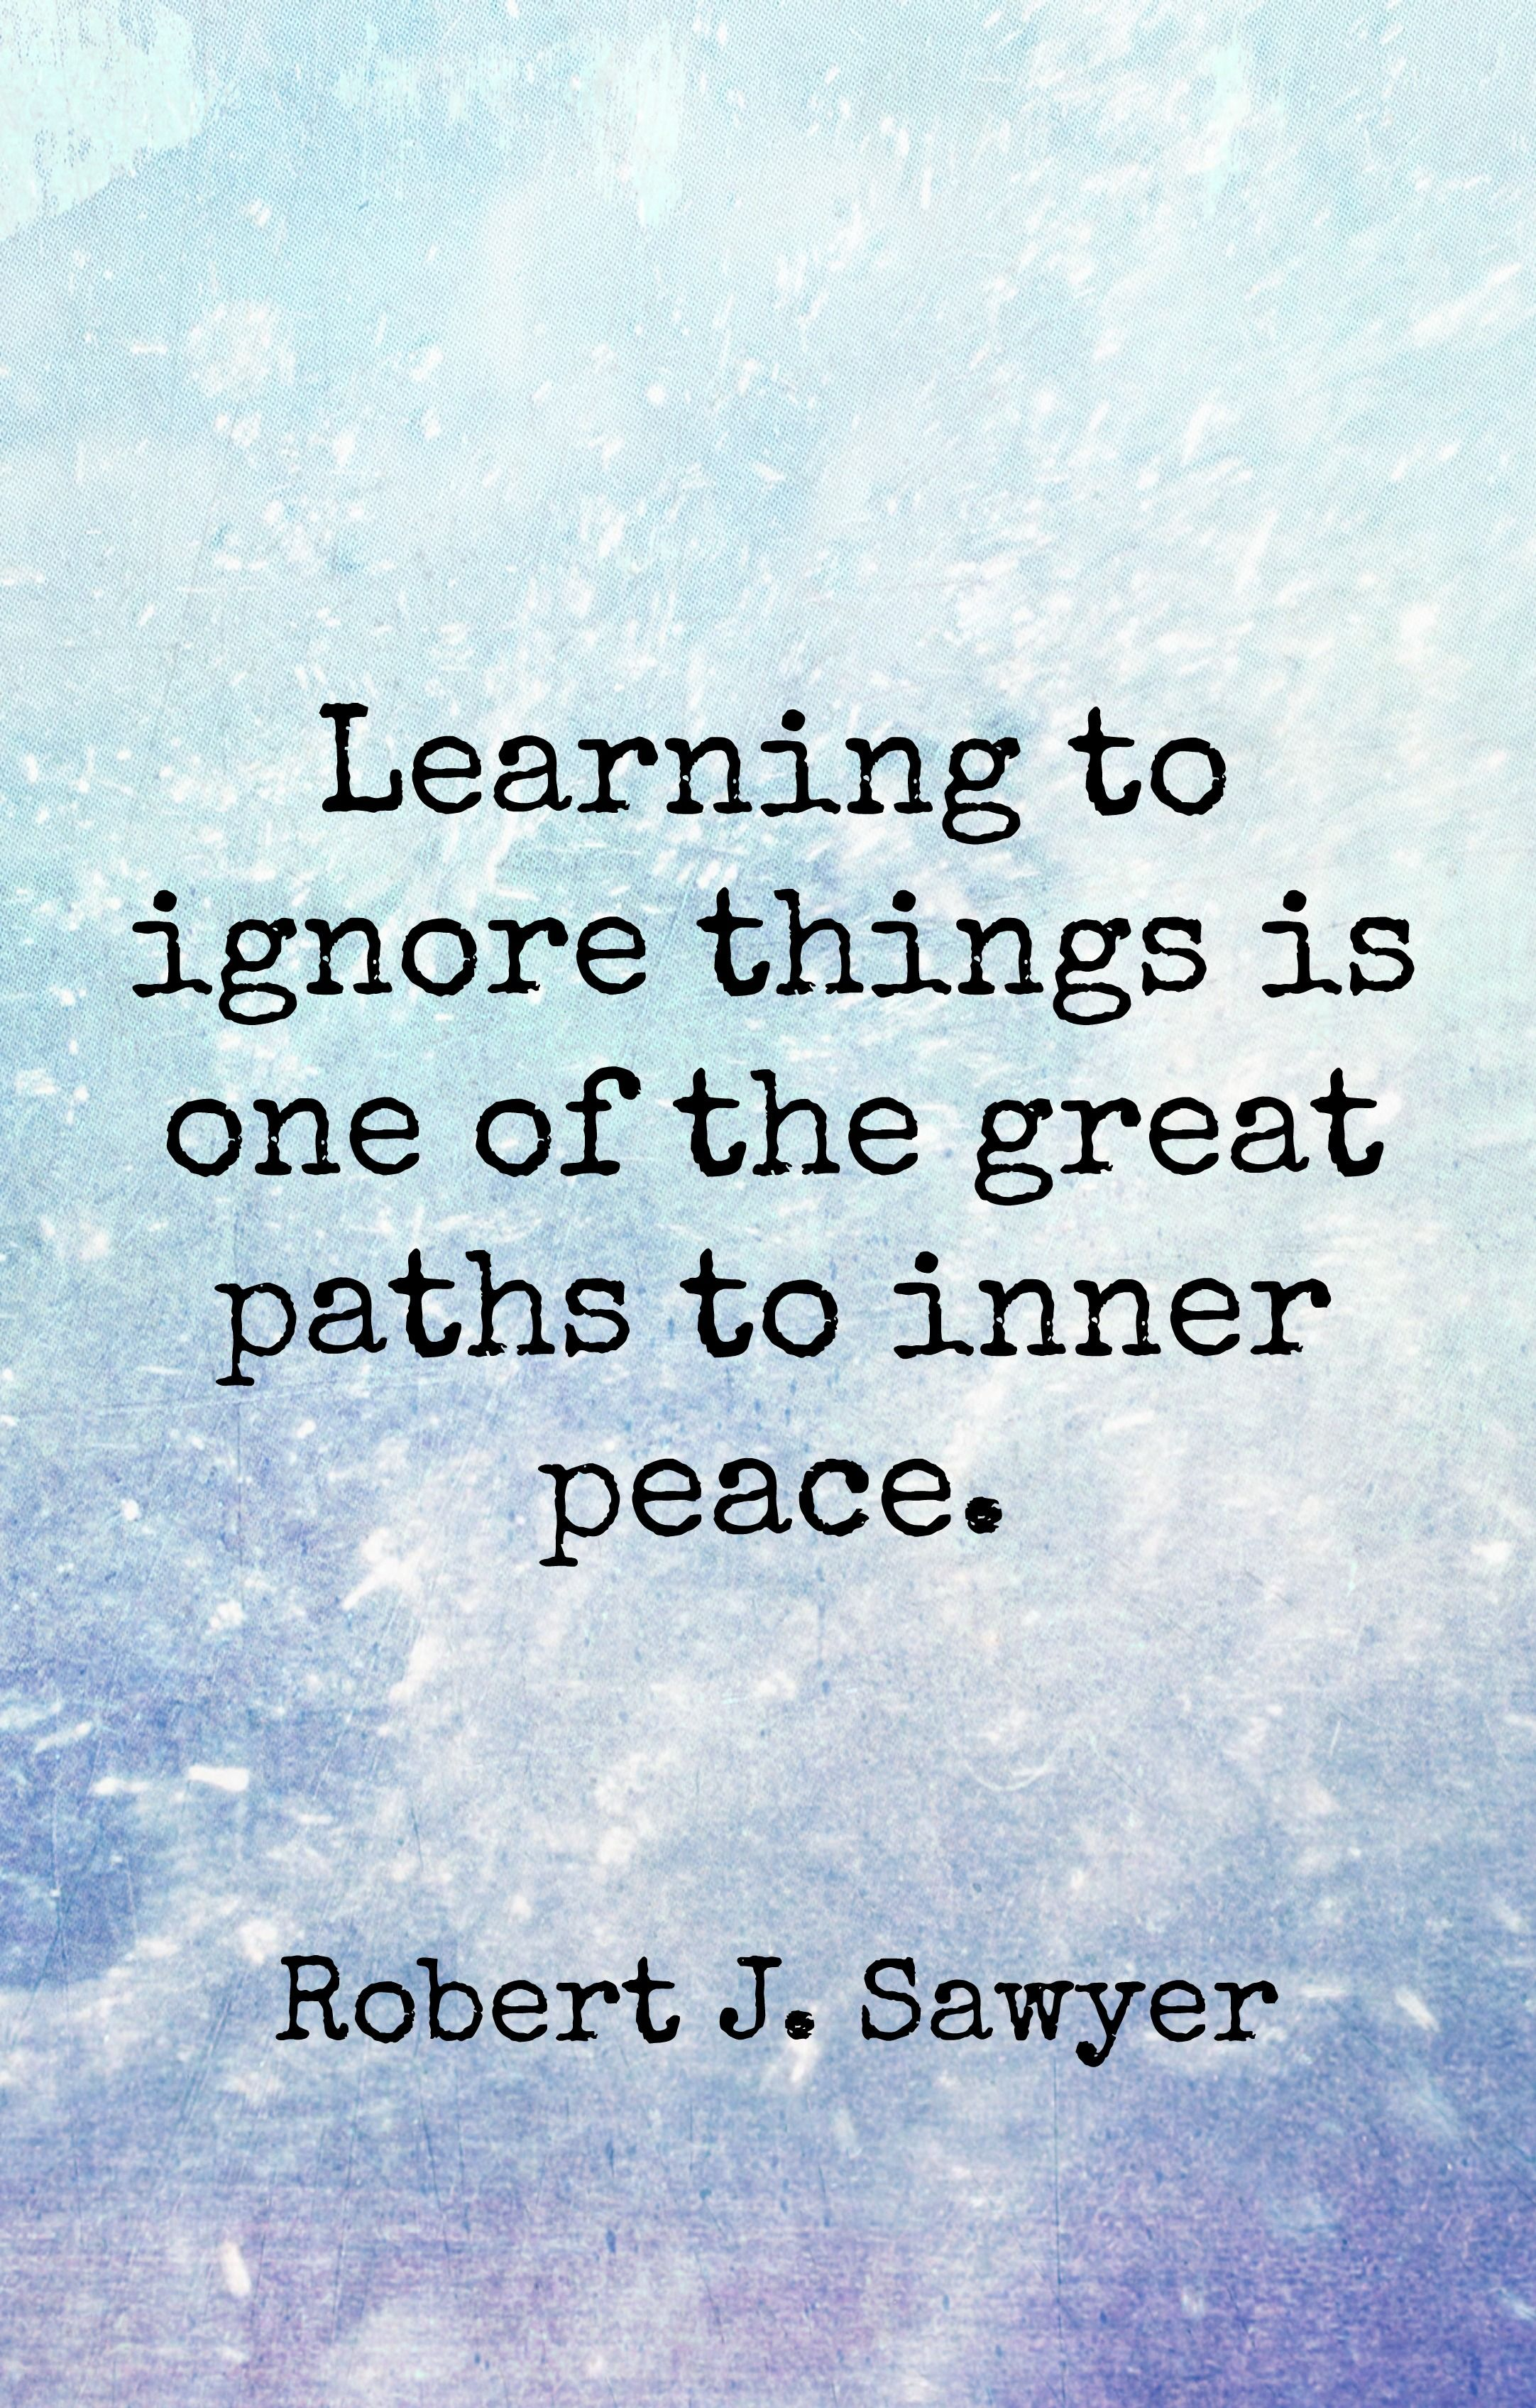 Peace Quotes Learning To Ignore Things Is One Of The Great Paths To Inner Peace